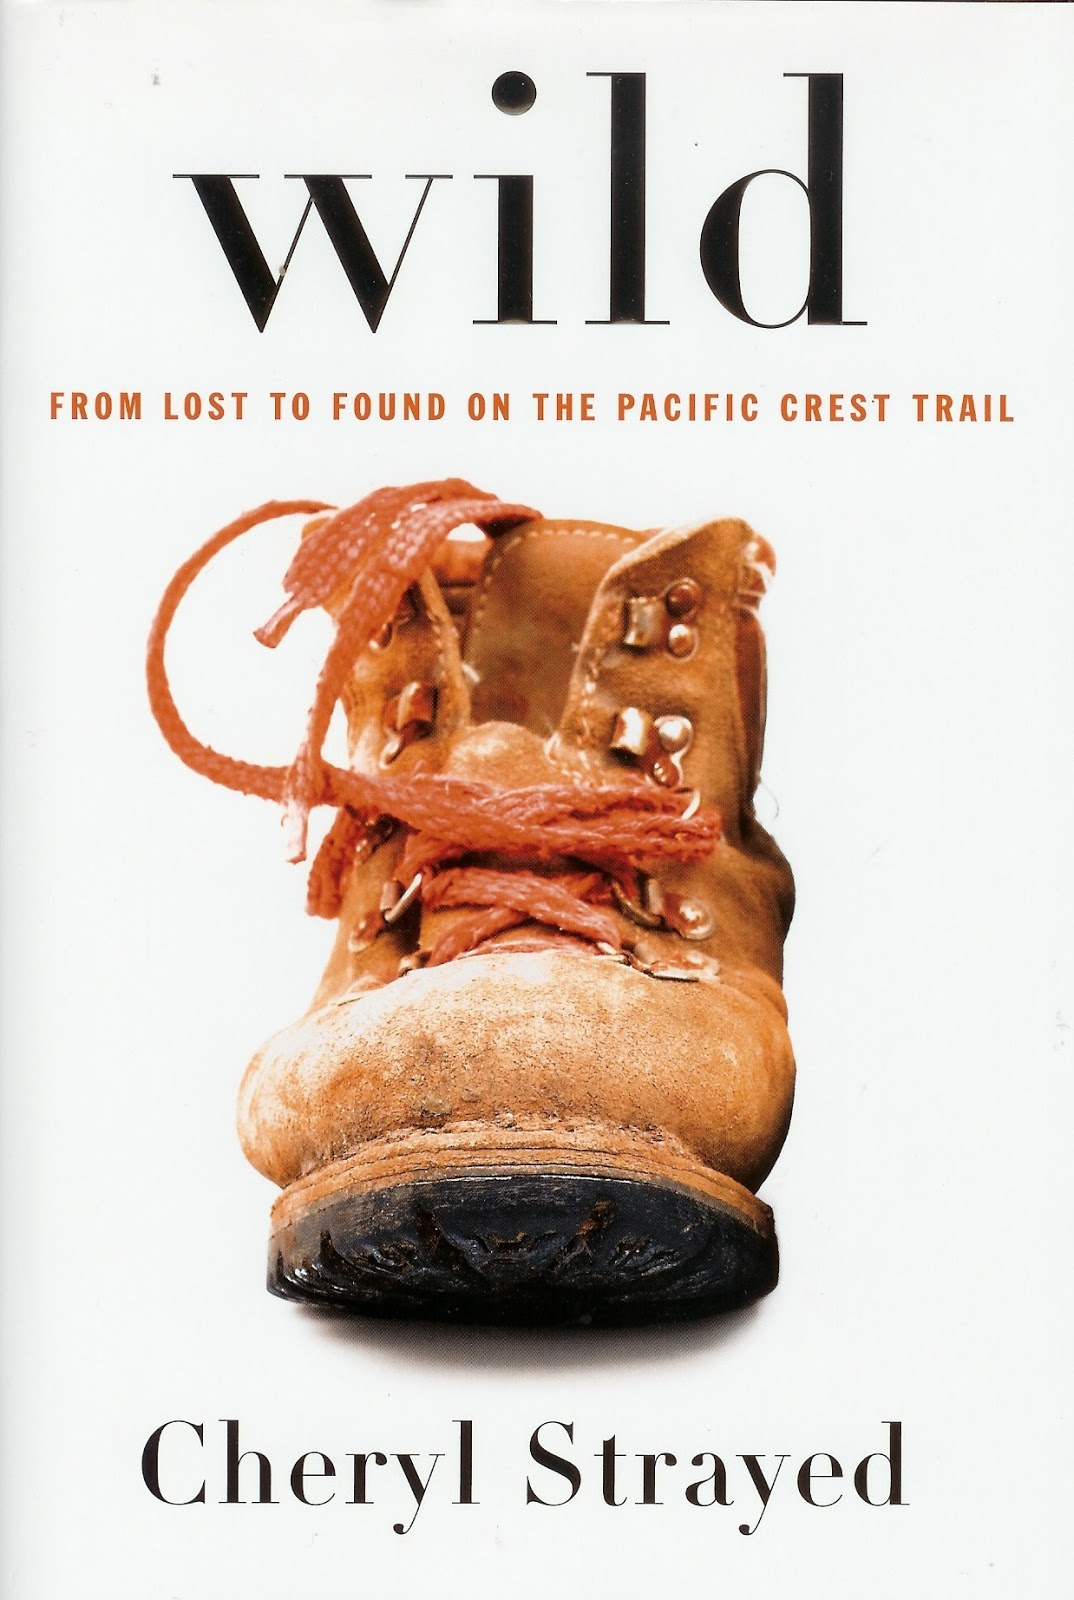 wild cheryl strayed travel book guide wanderlust solo female travel book tips reading list